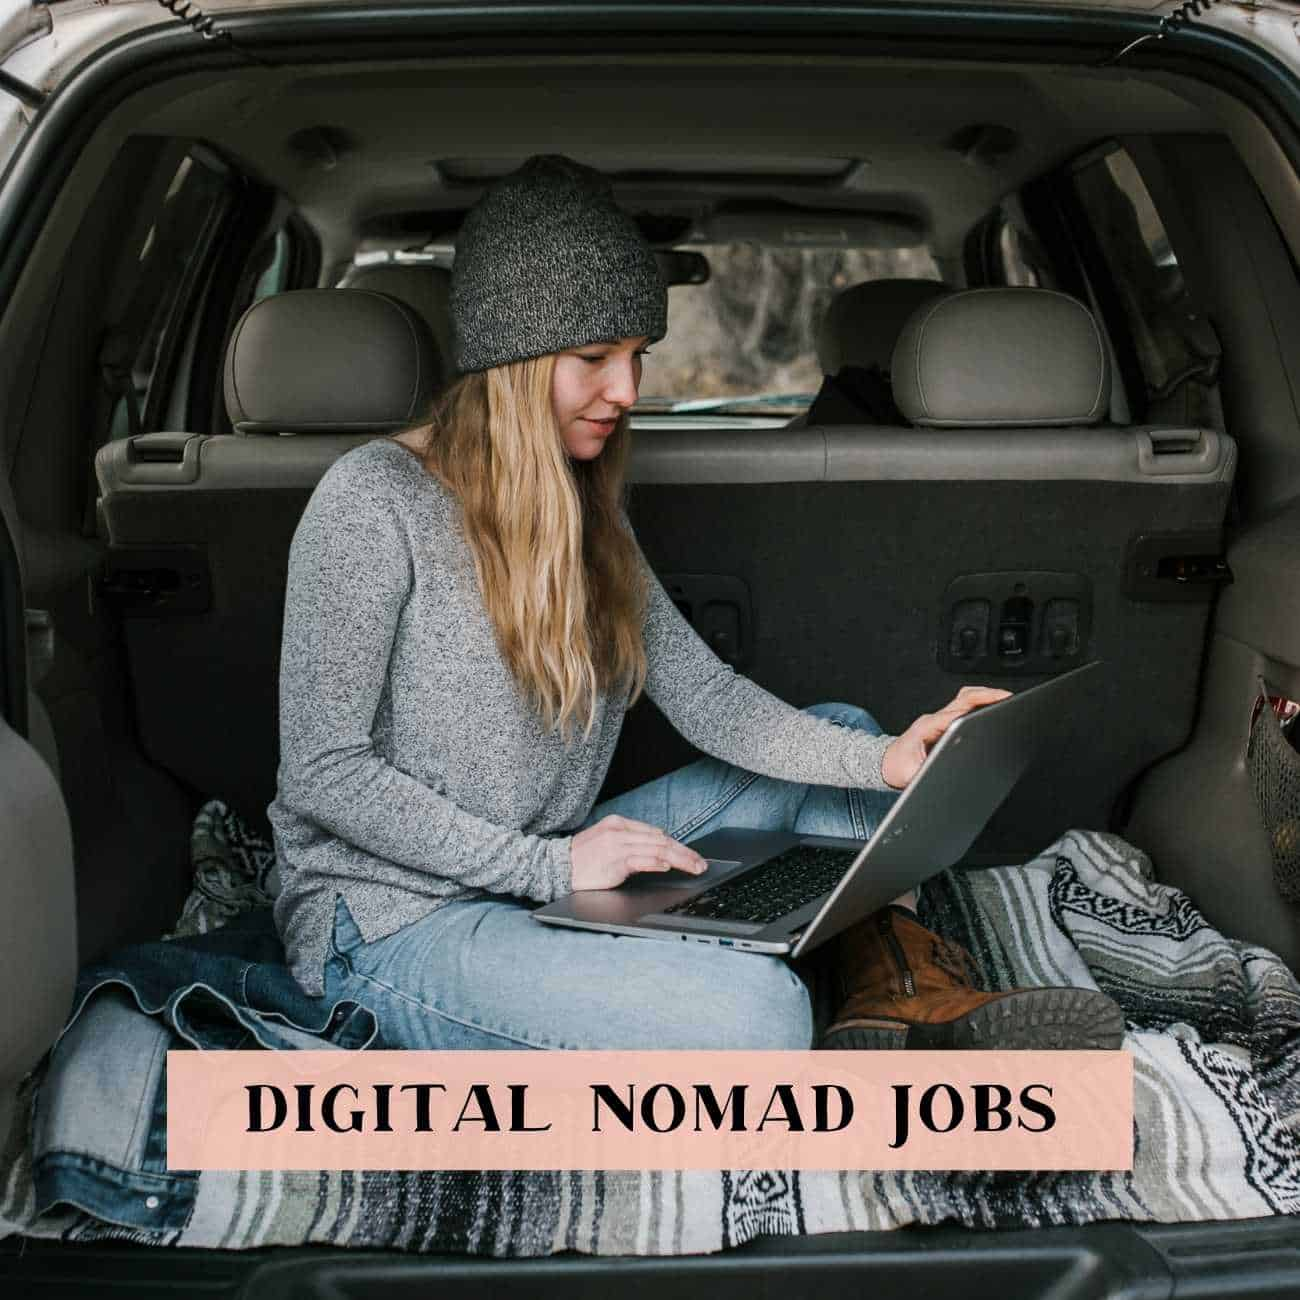 Remote jobs for digital nomads